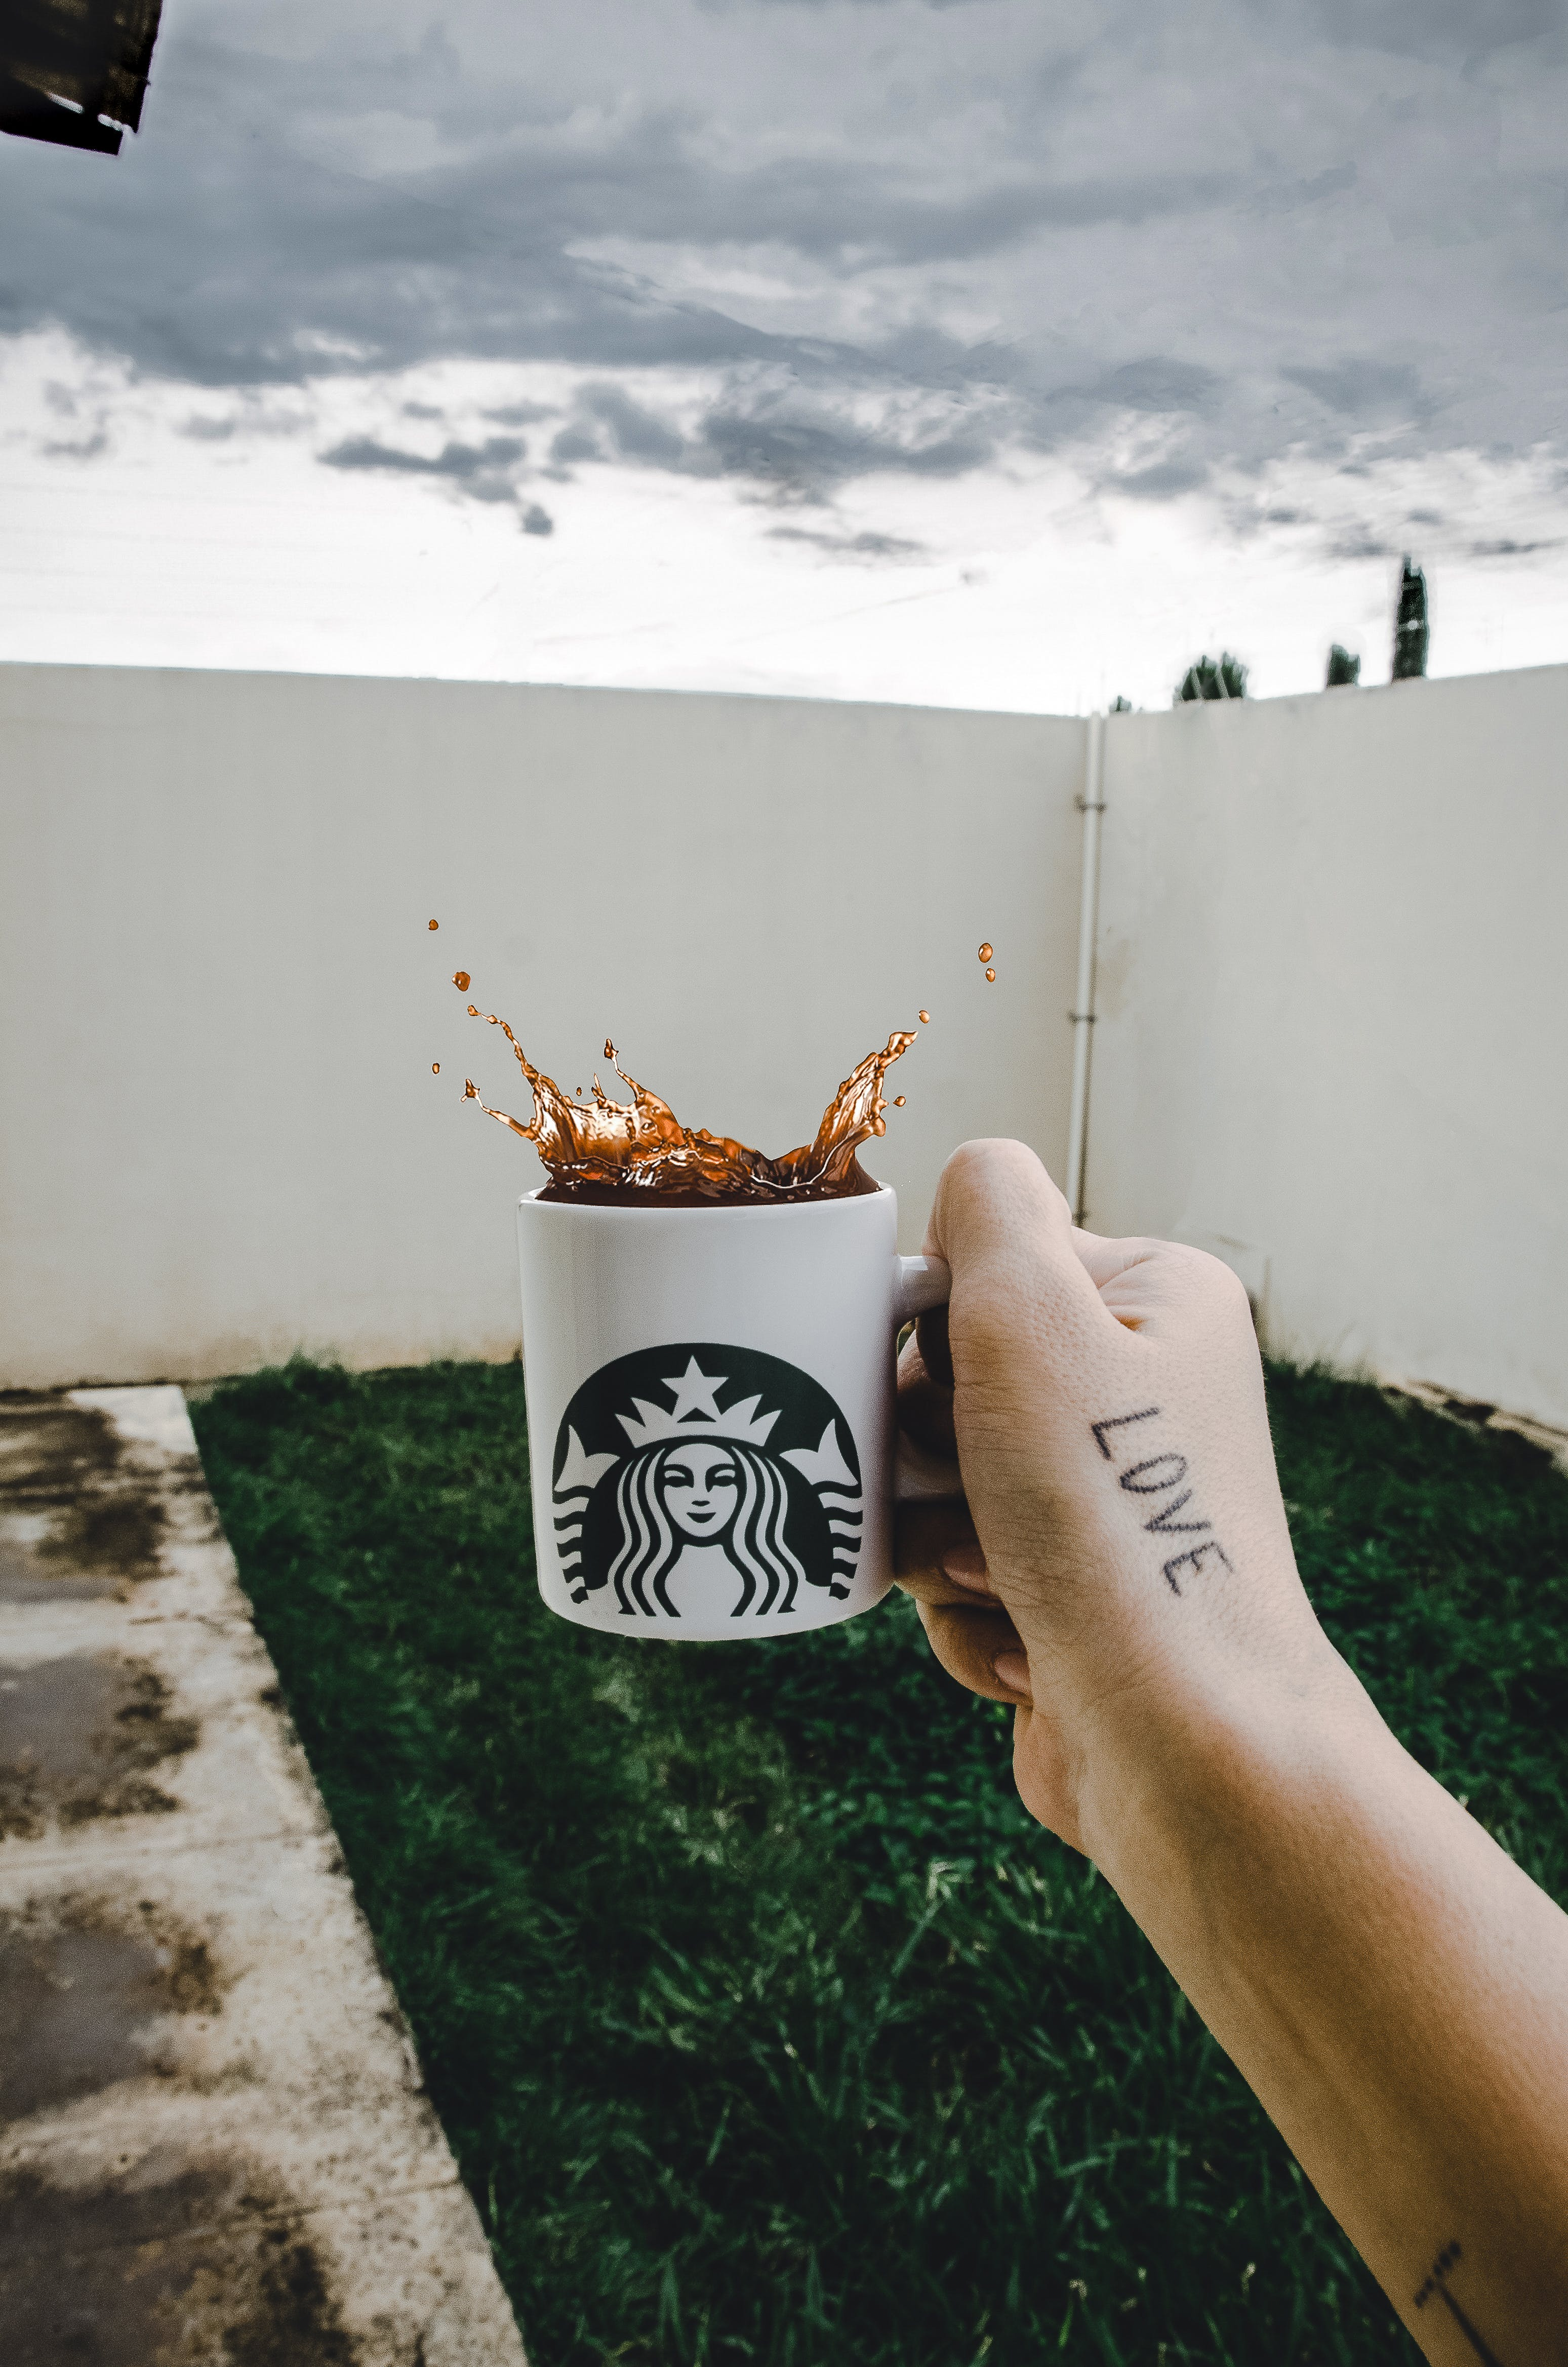 Person Holding Starbucks Cup With Brown Beverage